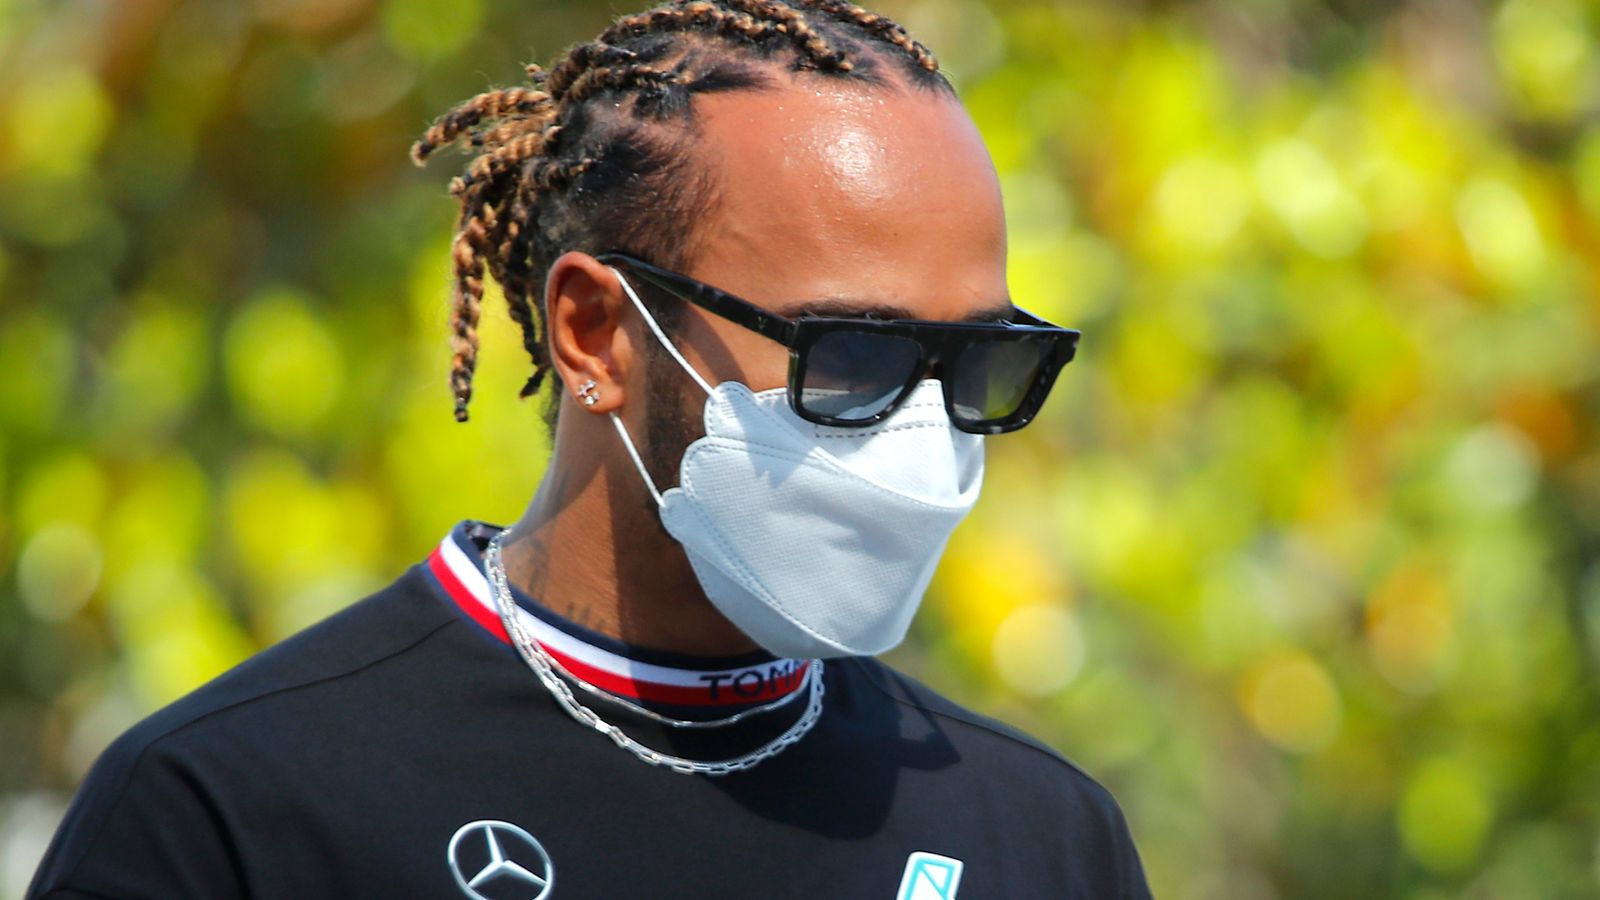 Lewis Hamilton backs Naomi Osaka over mental health difficulties for young athletes after tennis star backs out of French Open